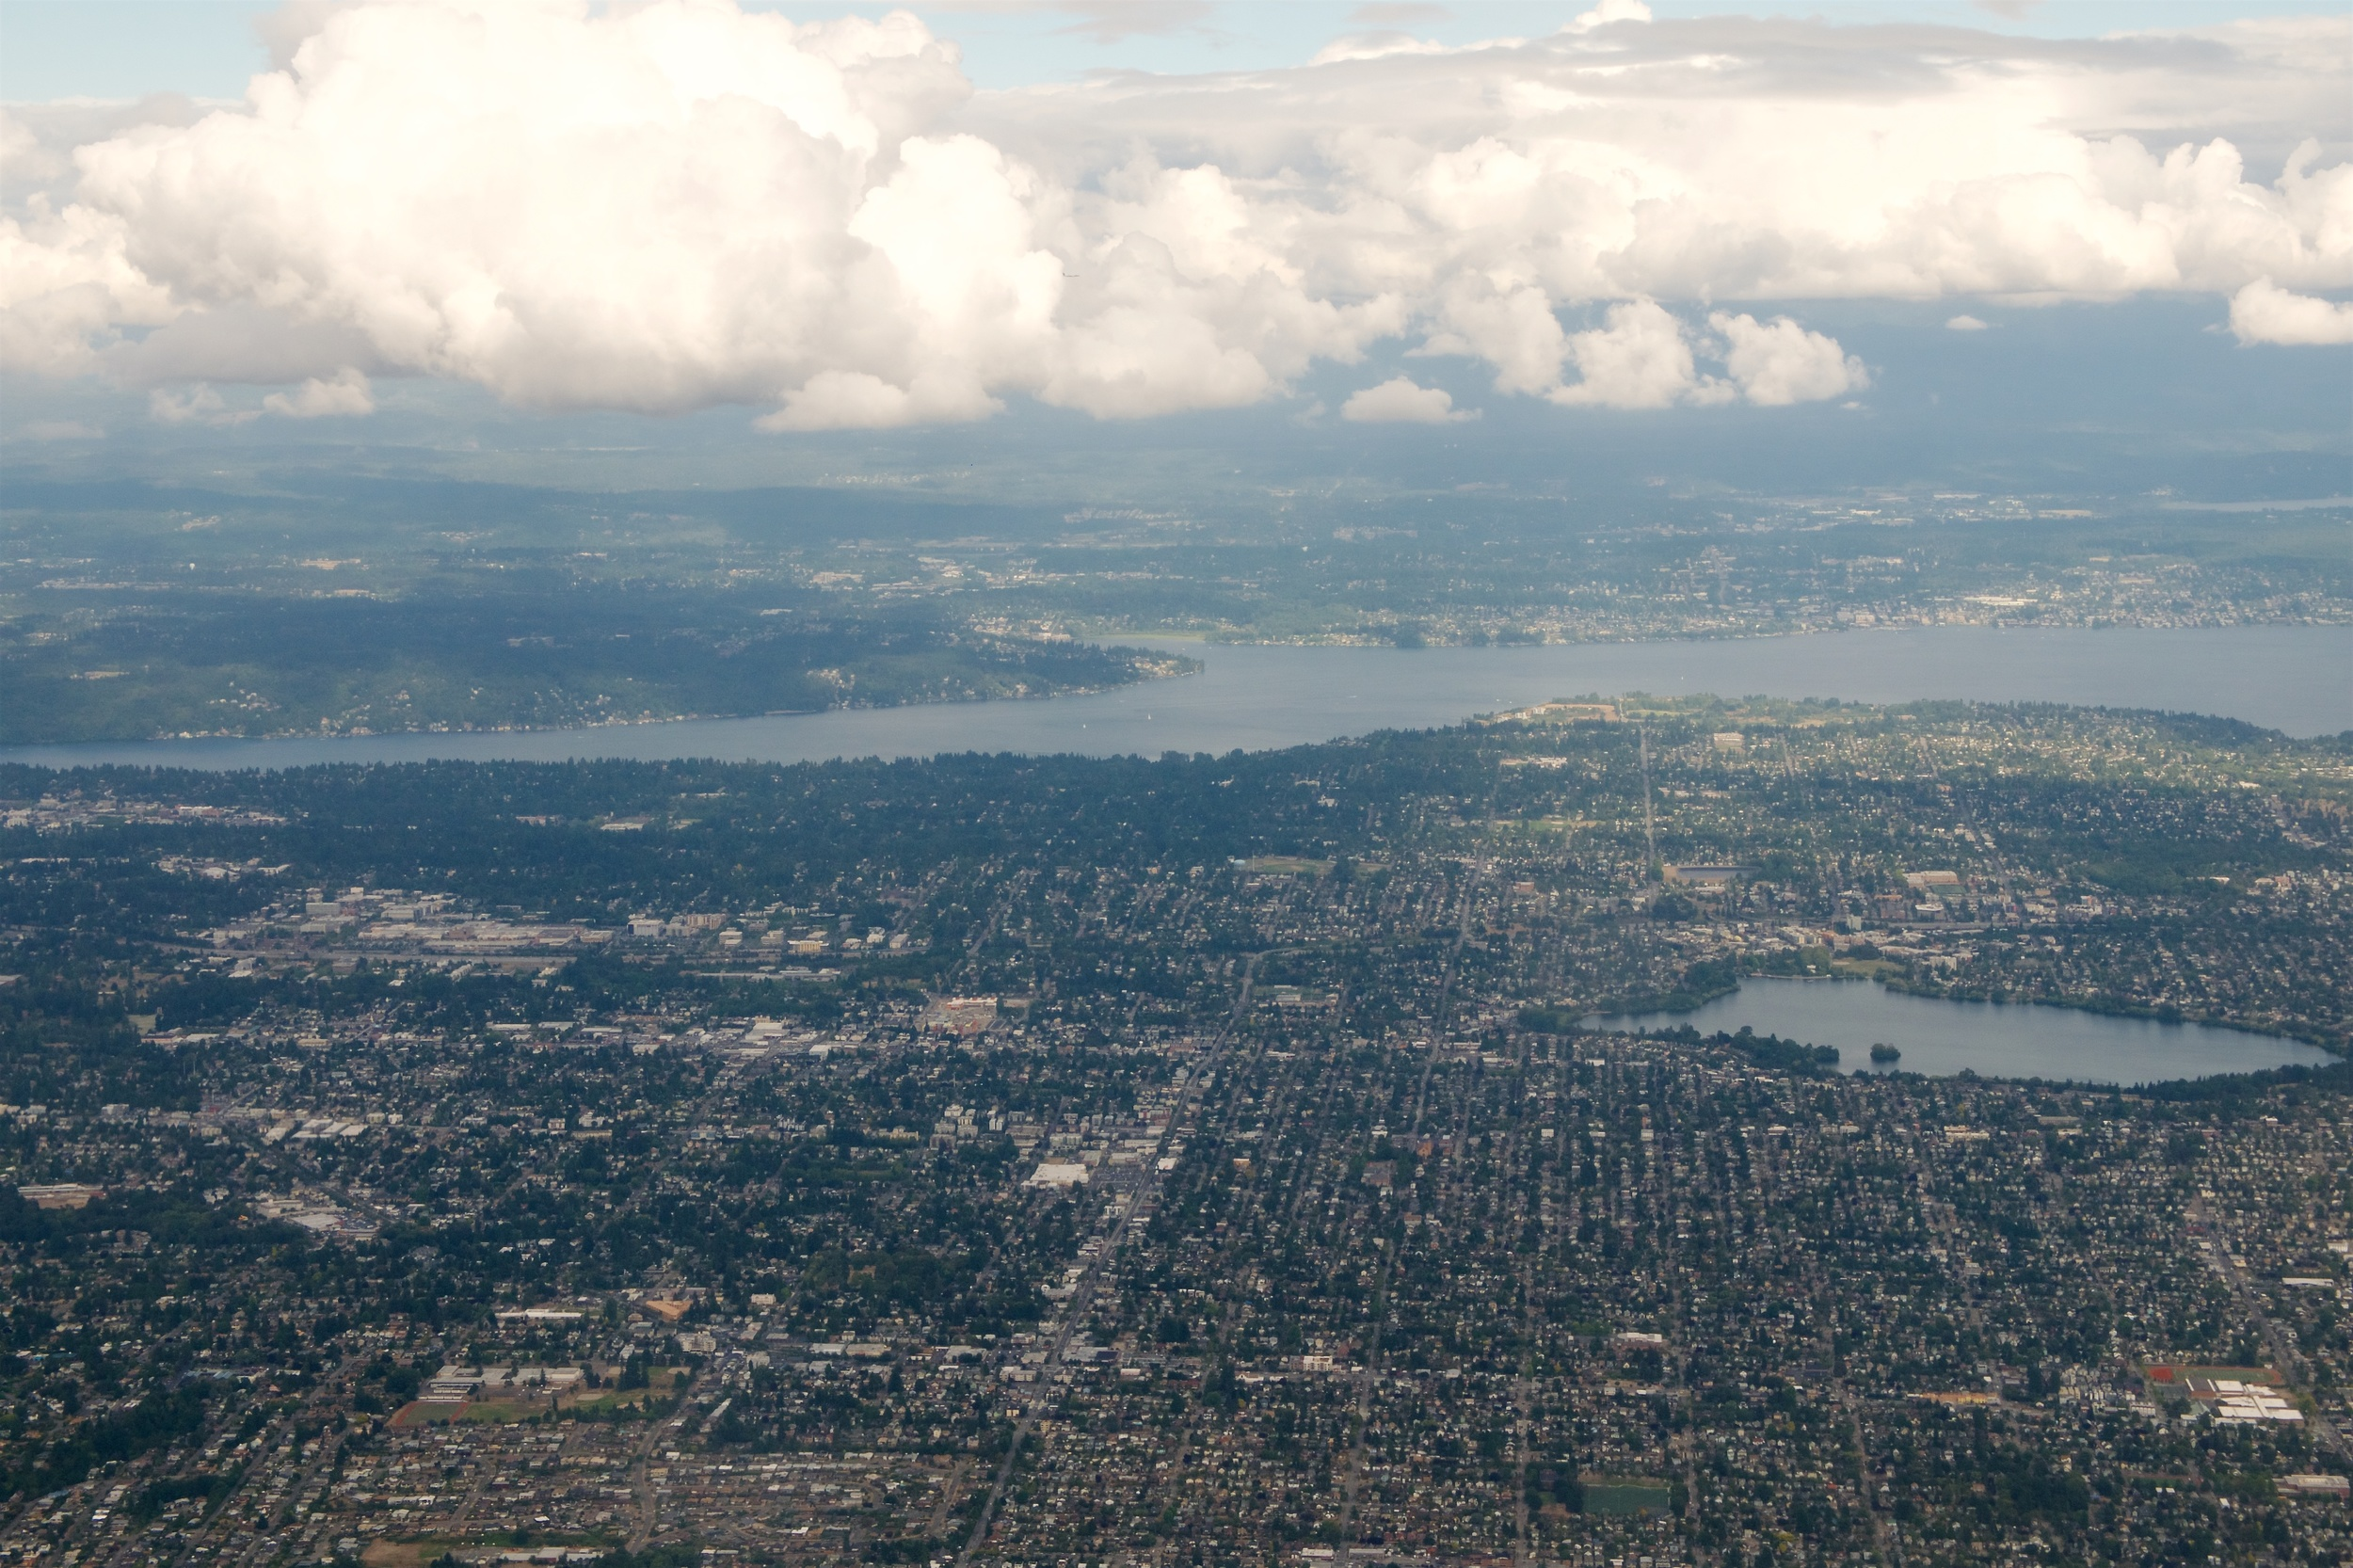 Northeast Seattle (Lake Washington going across the middle, Green Lake lower right, our house is in the center of the photo)